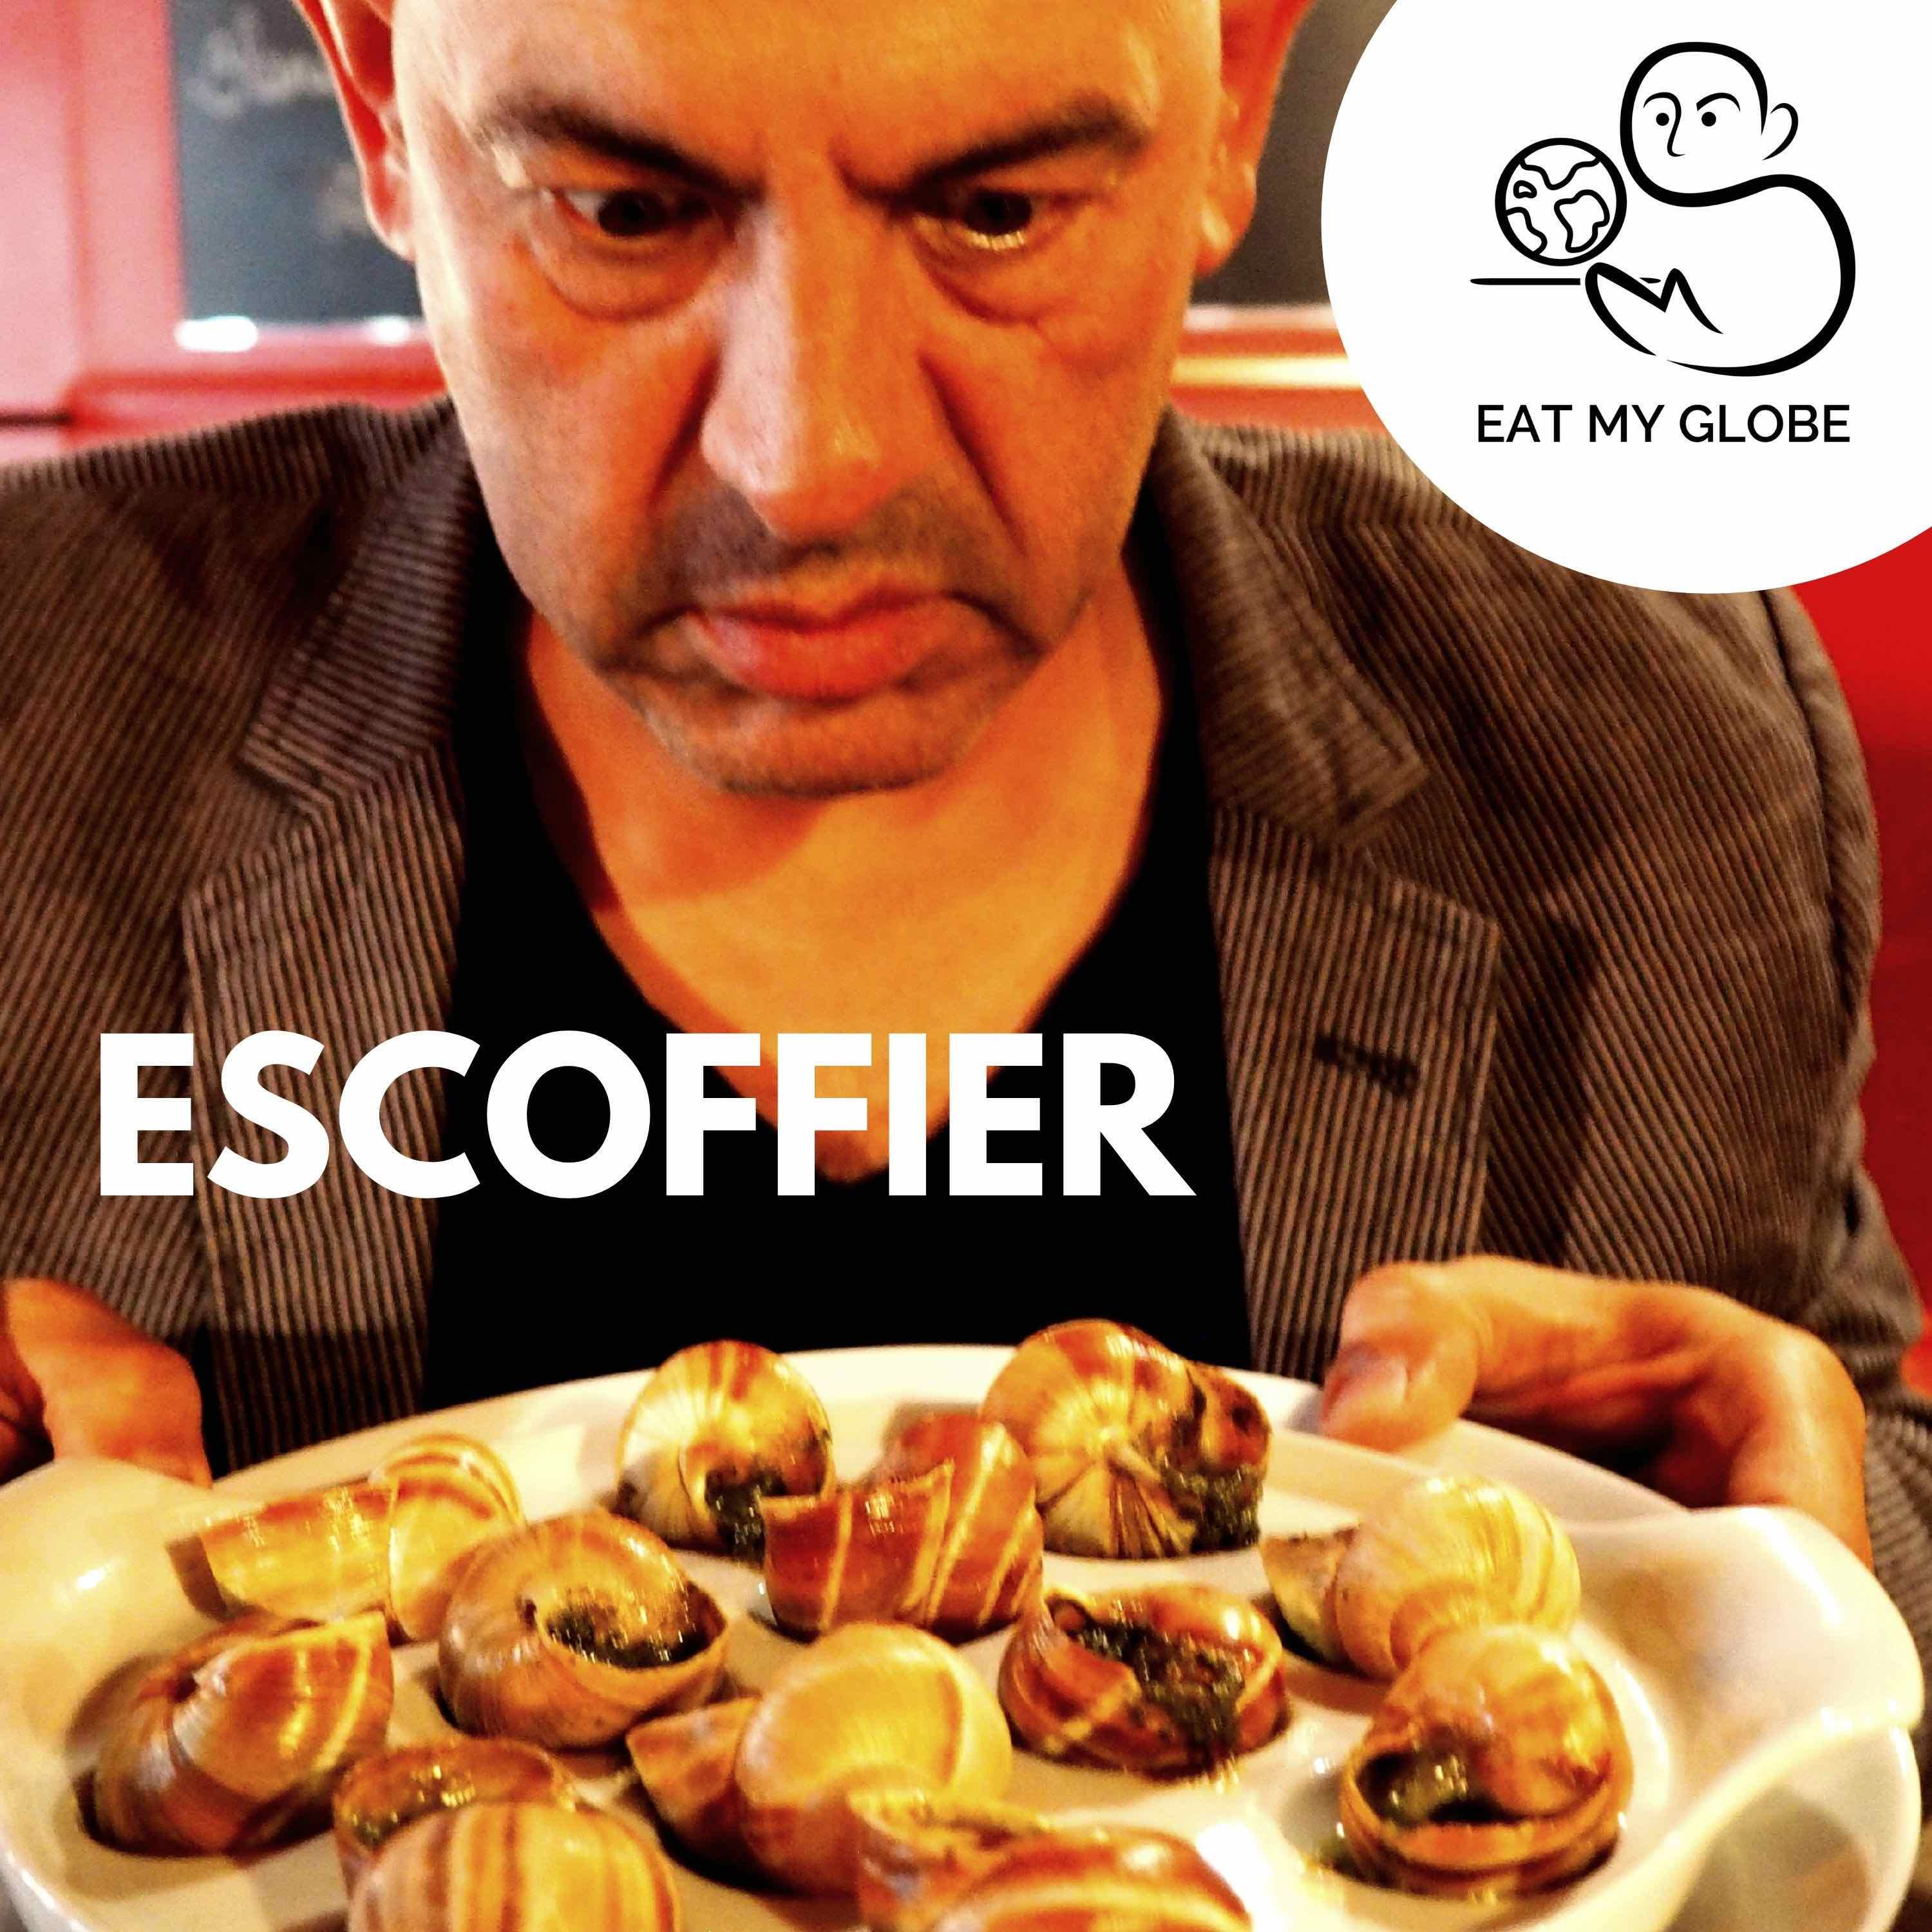 King of Chefs & Chef of Kings: The Story and Impact of Georges Auguste Escoffier